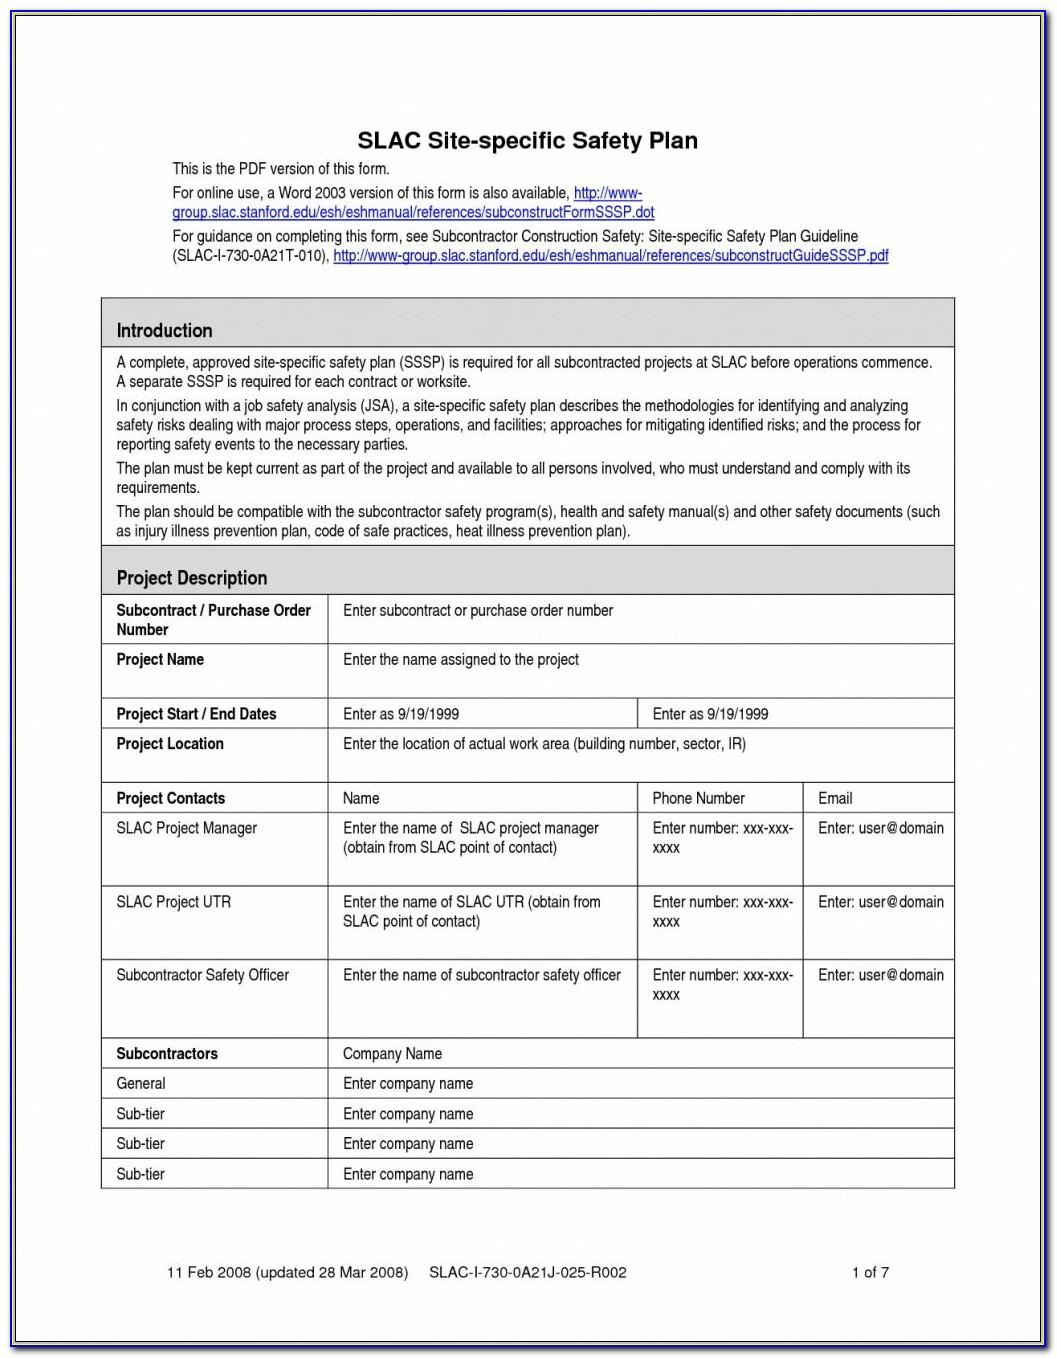 Emergency Action Plan Template Osha 1910.38